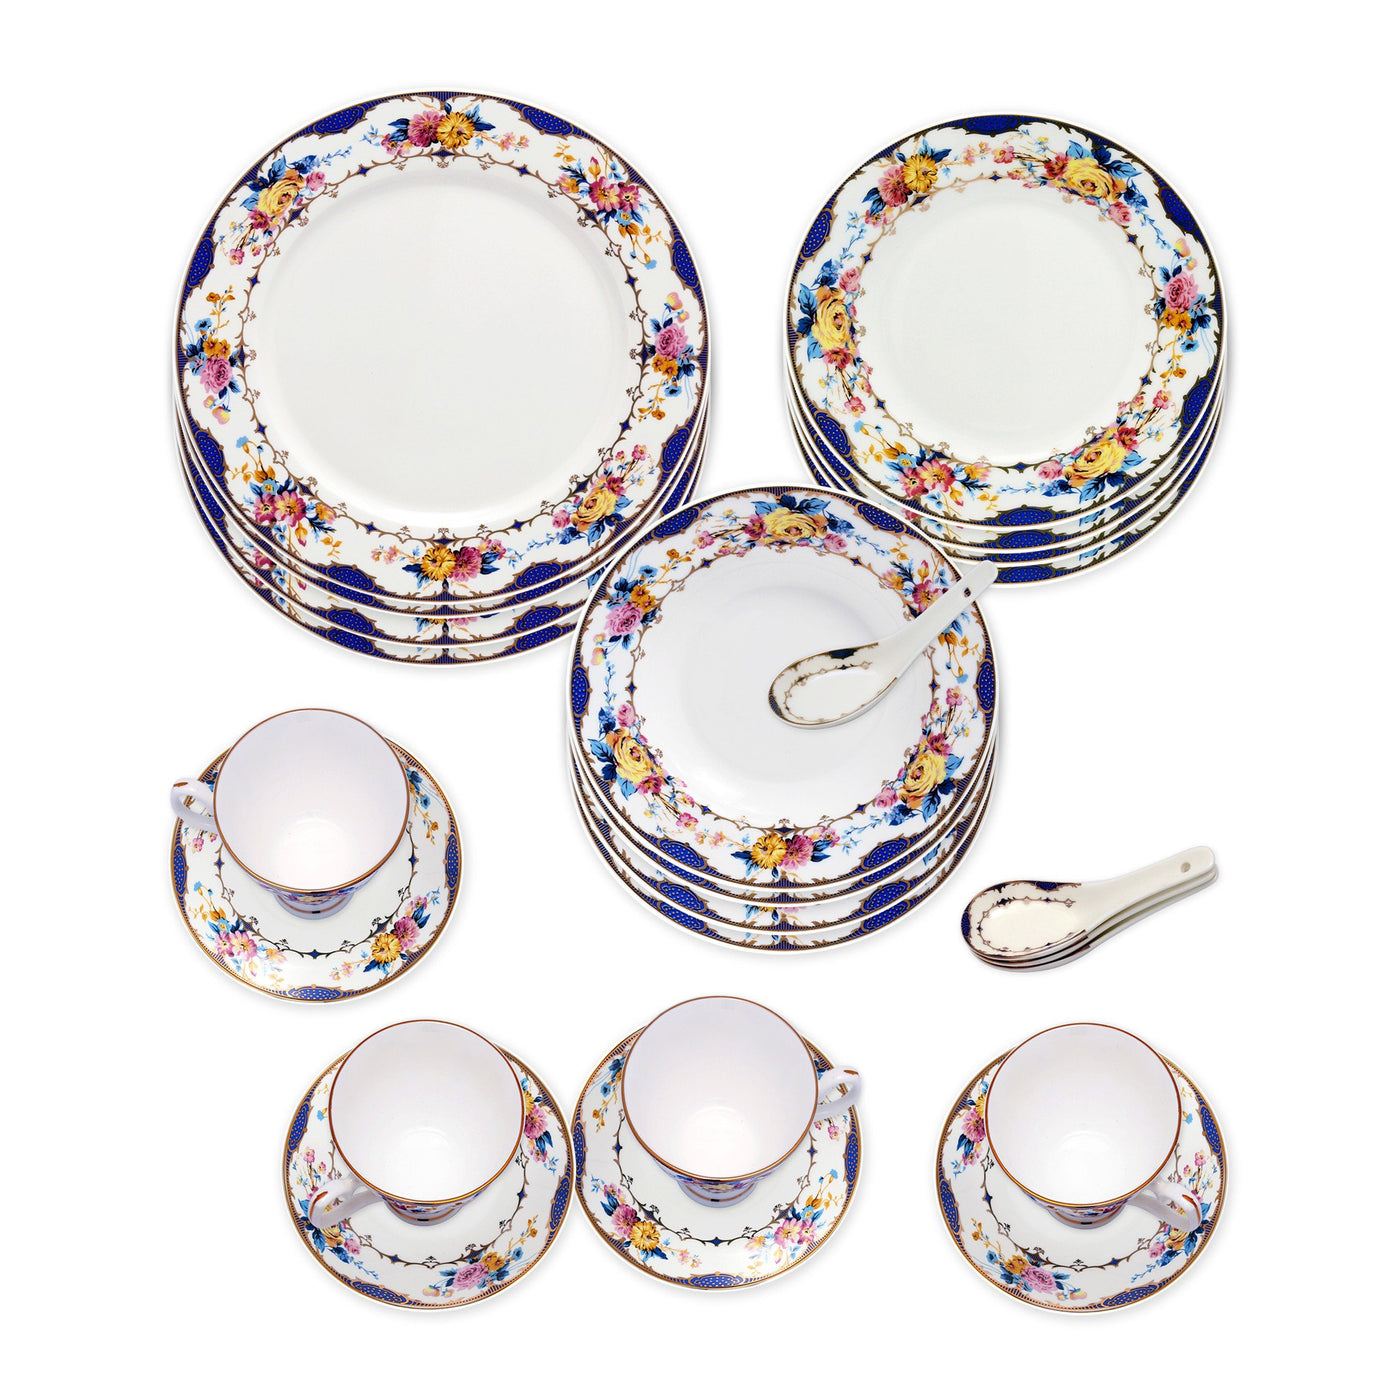 ... Dinnerwares - Bone China 24 Piece Dinnerware Set Floral Design And Blue Border Service For ...  sc 1 st  Homenique.net & Fine Bone China Dinnerware Set - 24 Piece Service for 4 - Vivid ...